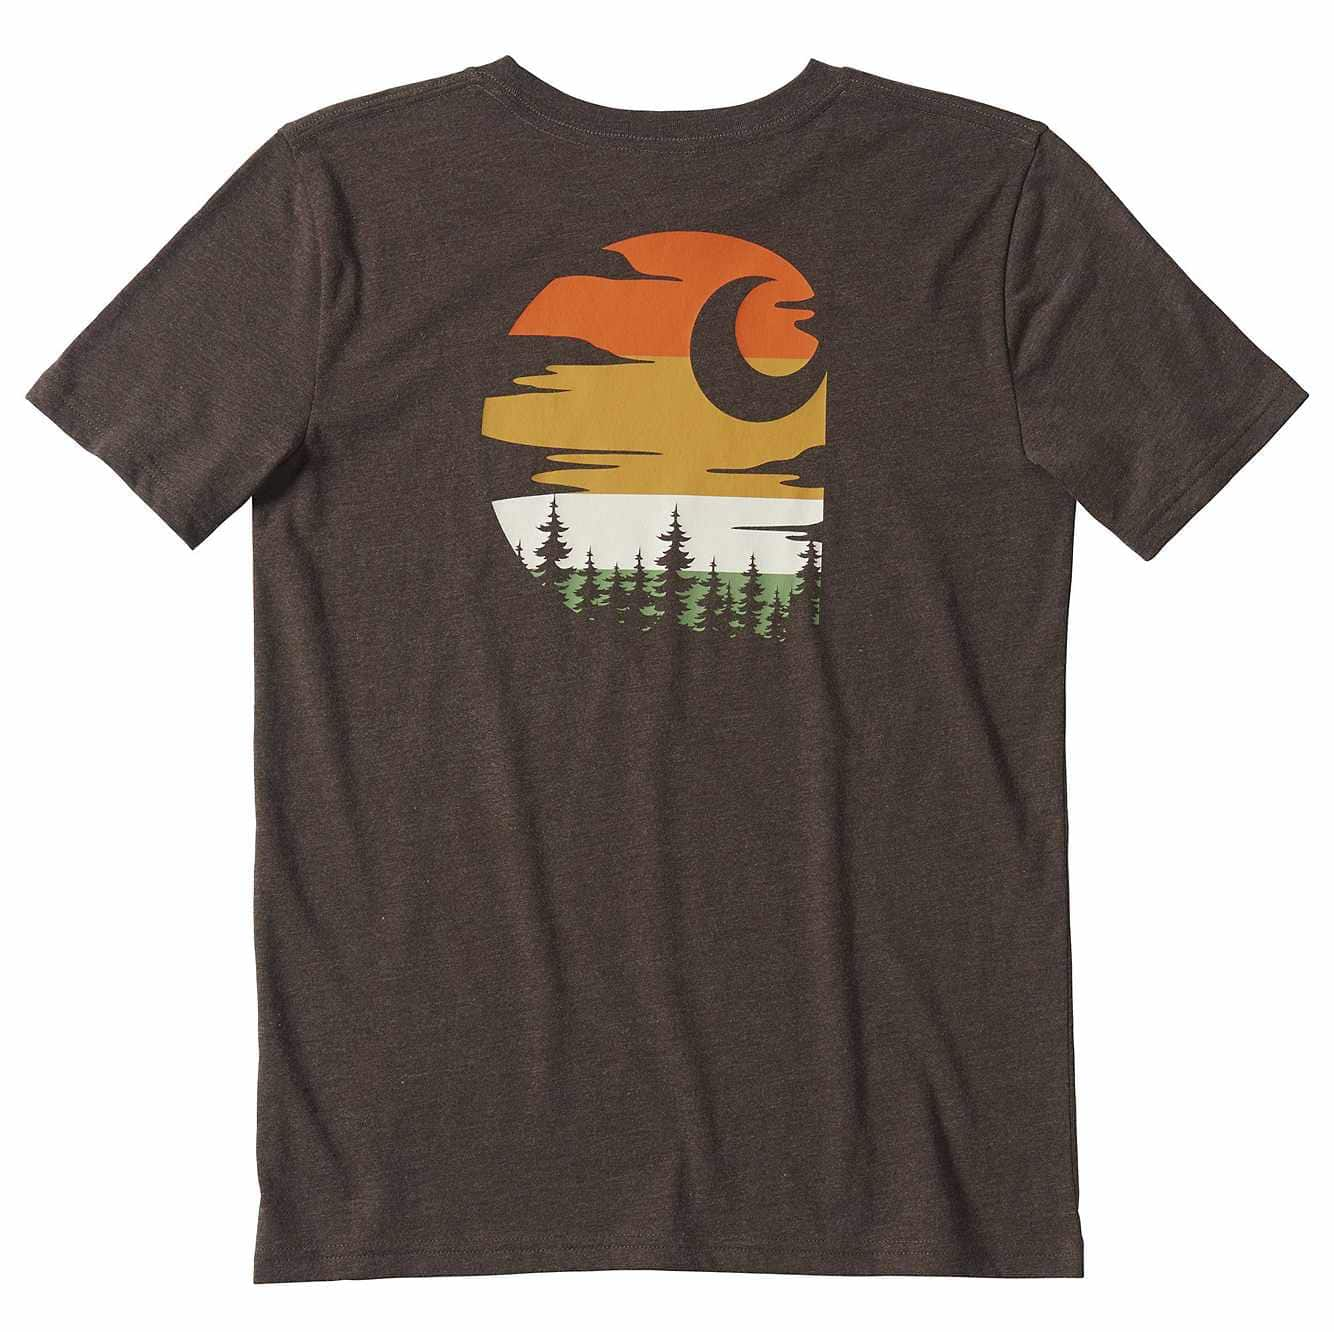 Picture of Sunset C Graphic T-Shirt in Mustang Brown Heather